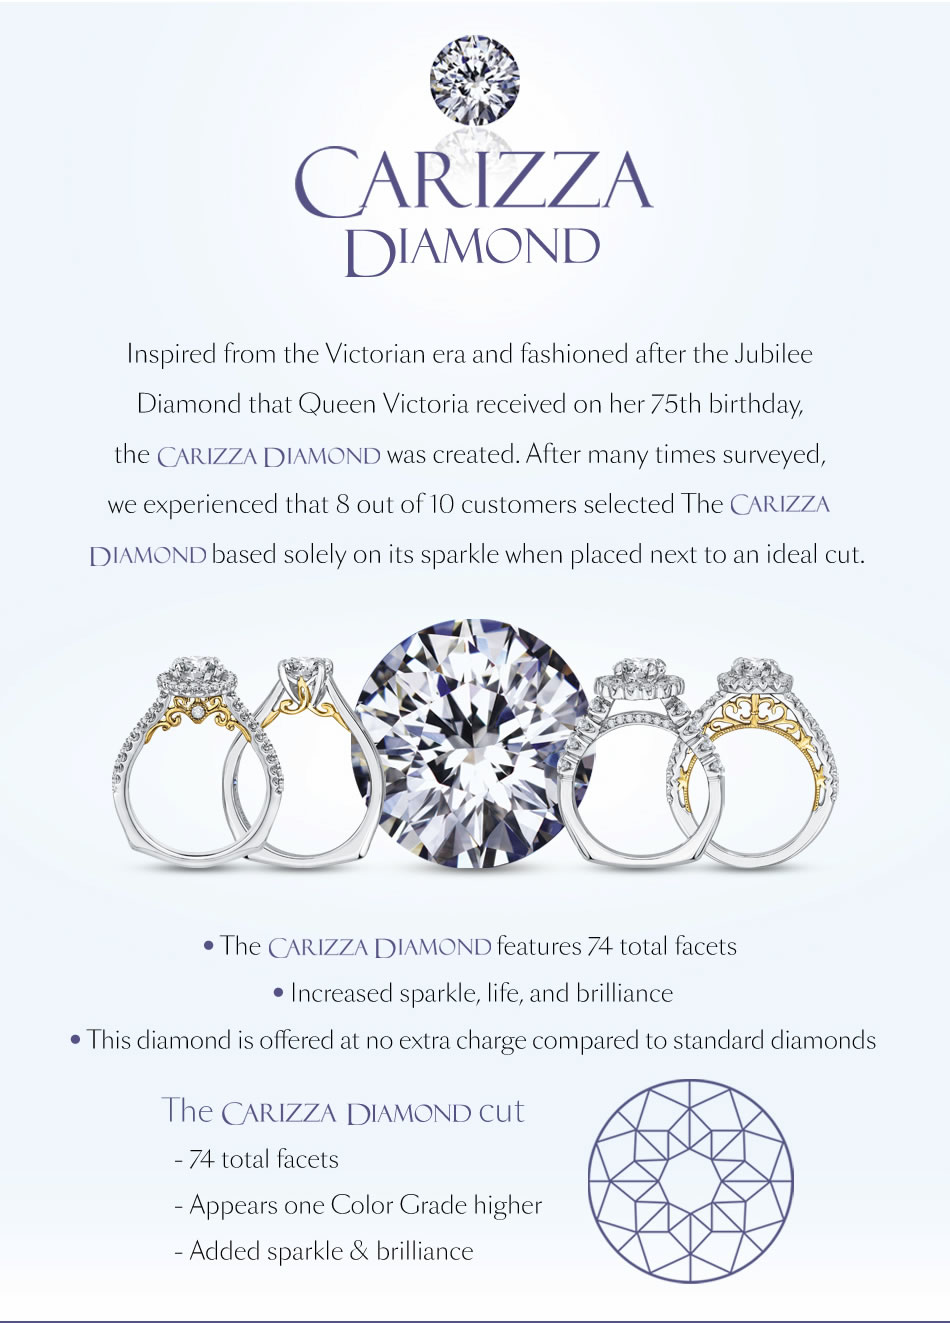 Carizza Diamonds